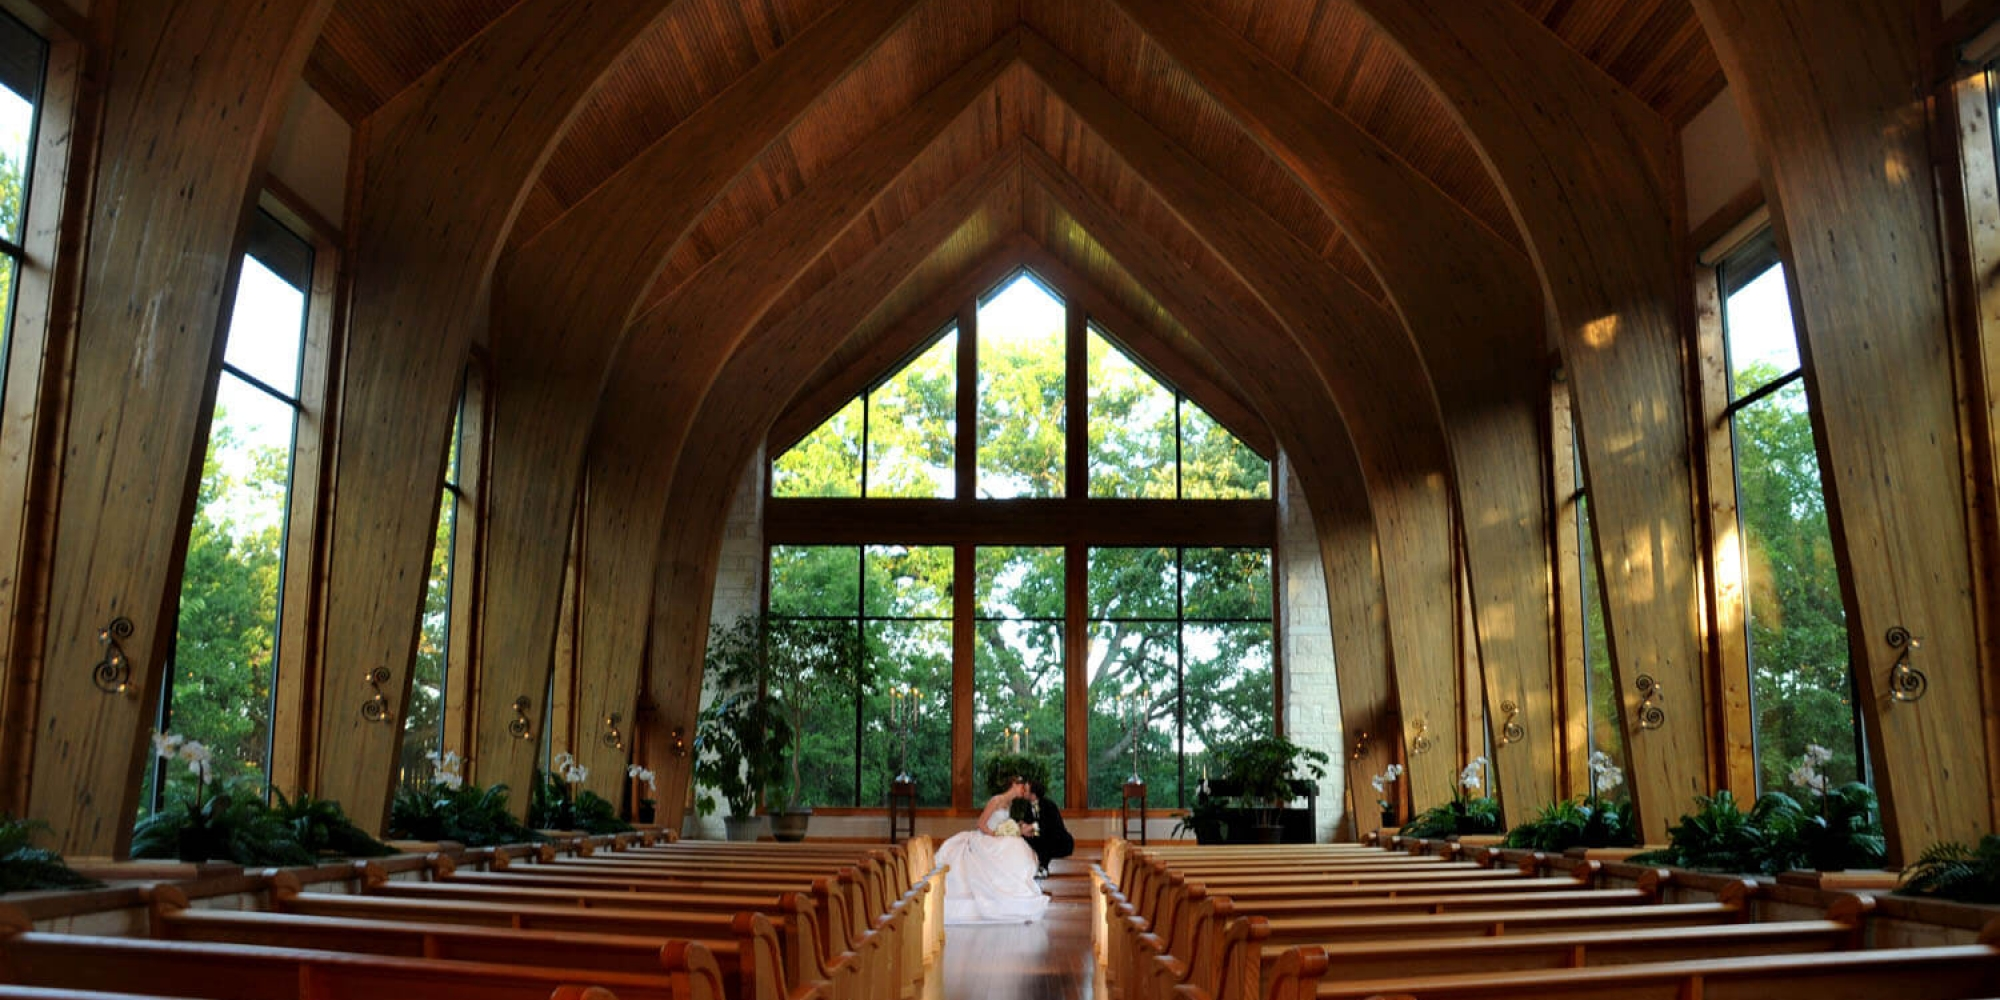 Thunderbird Chapel | Outdoor beauty without the worries!